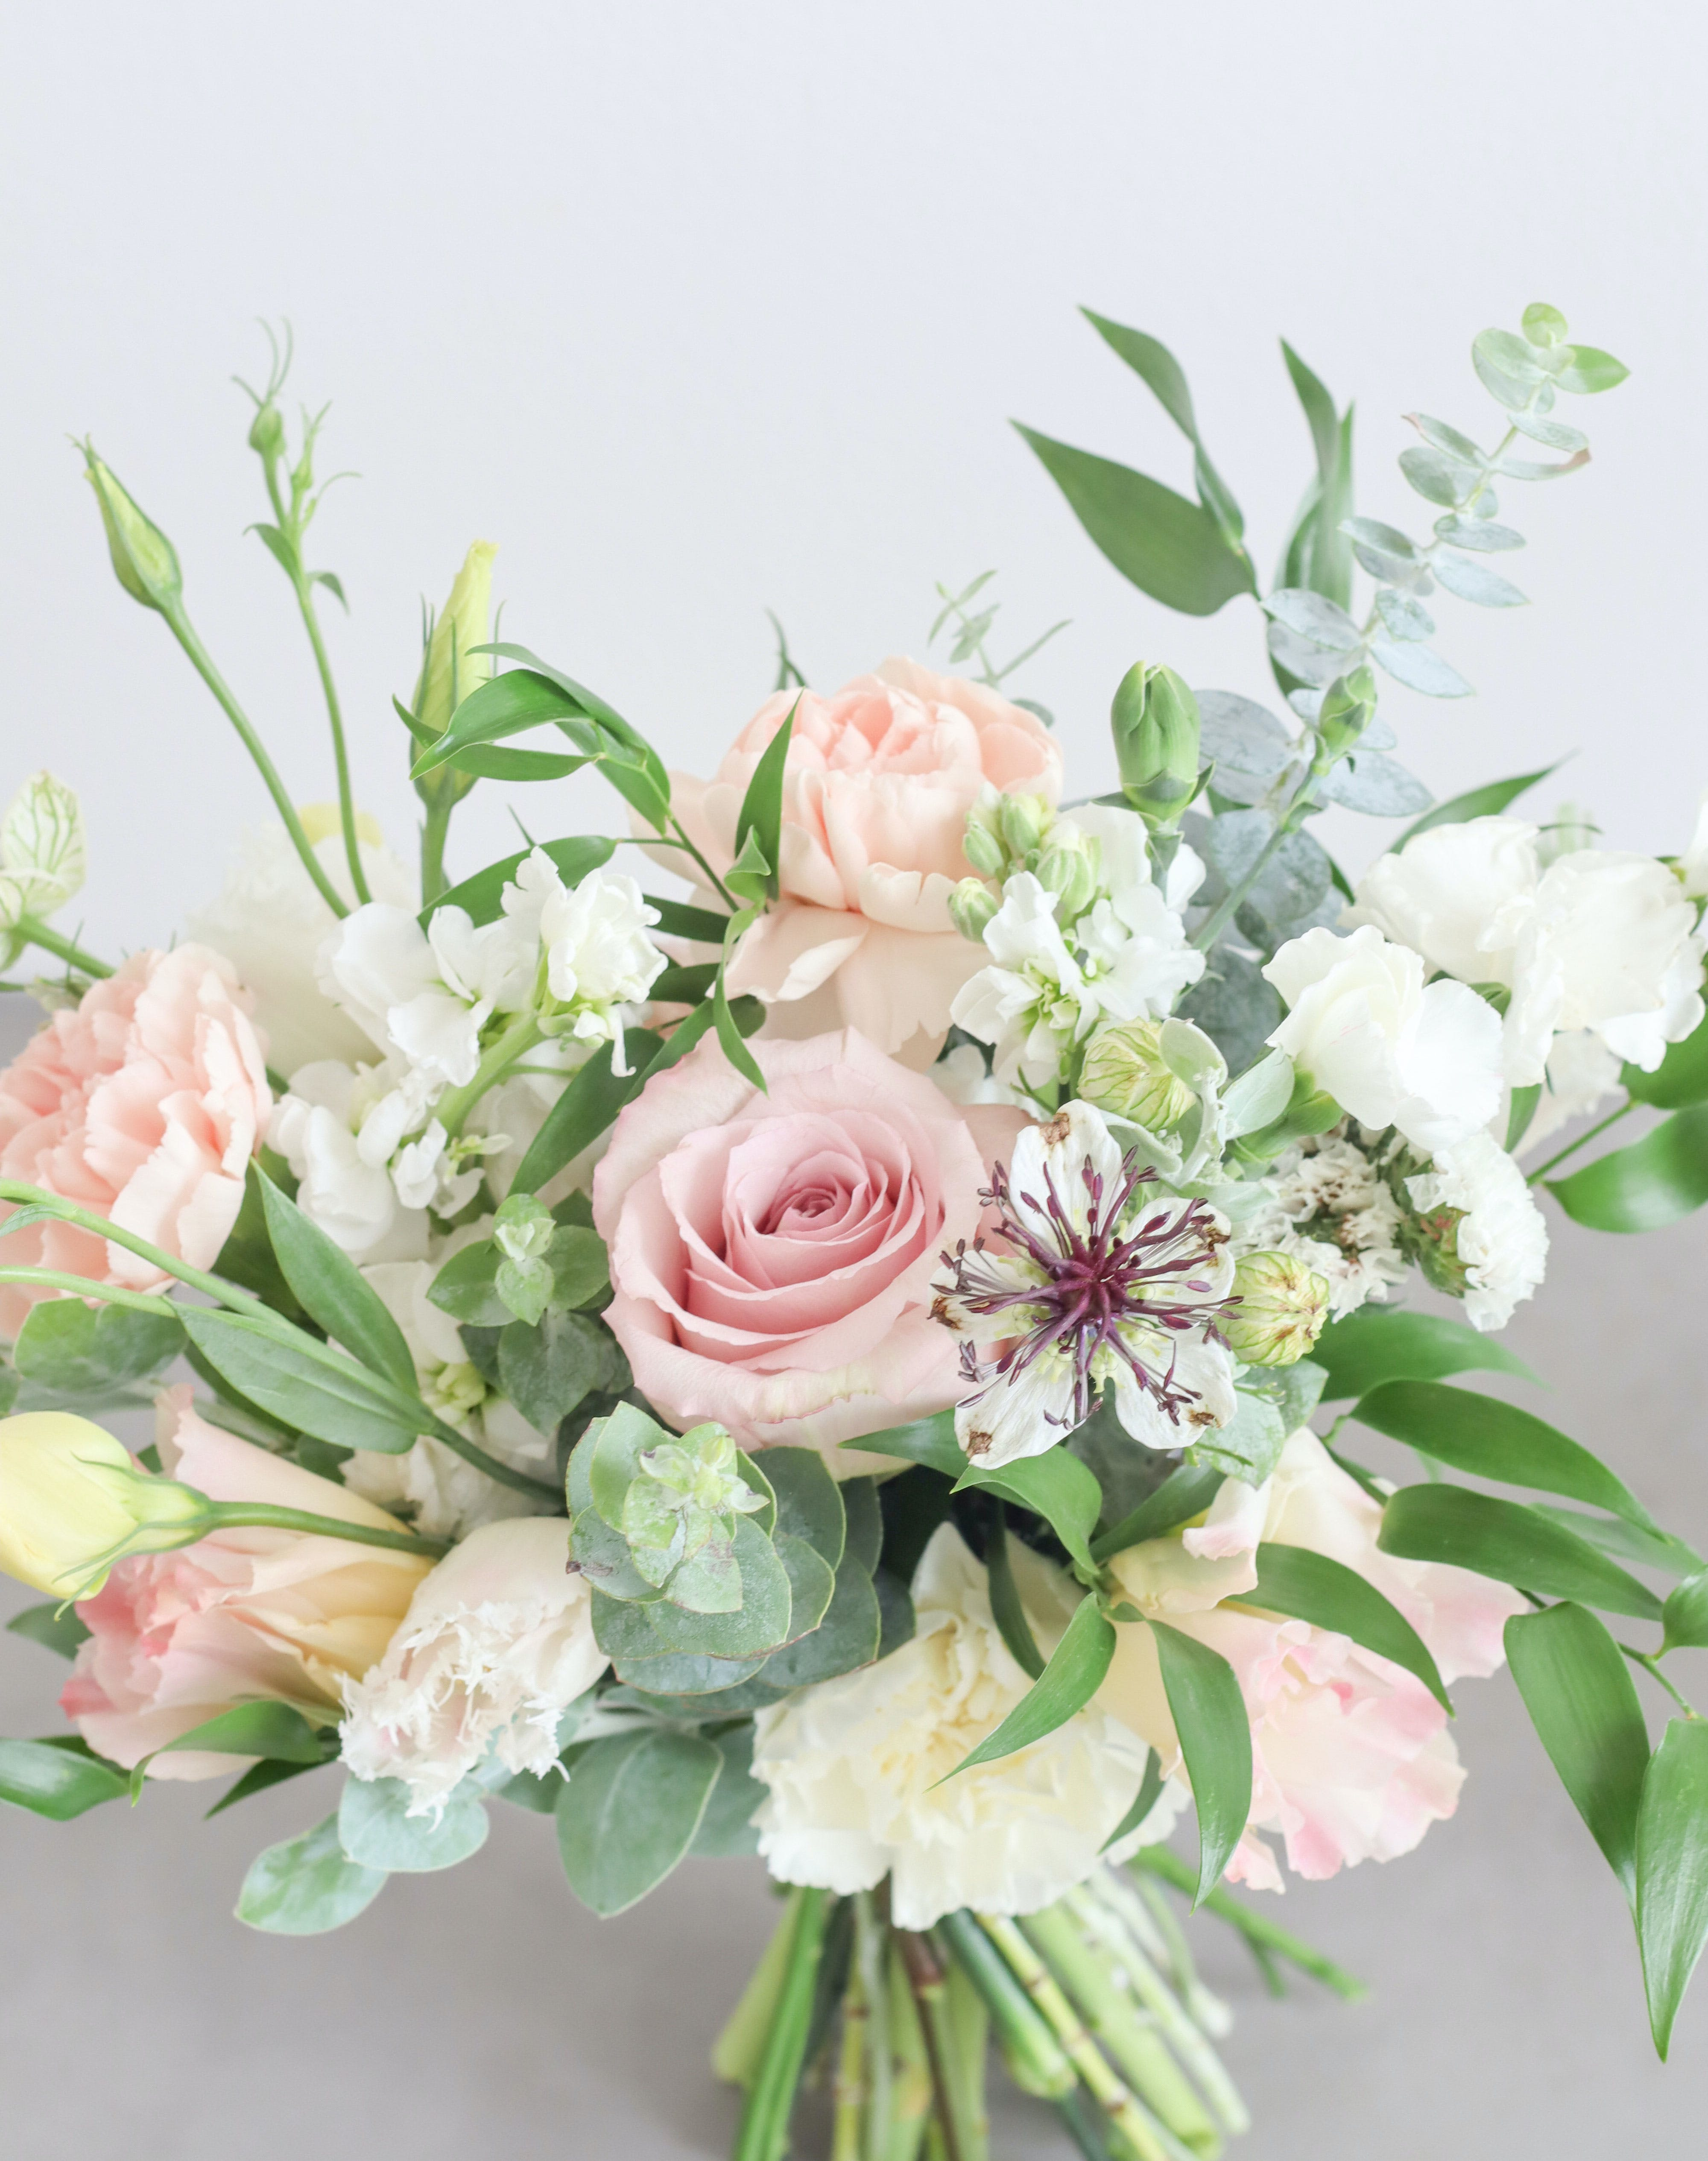 farmgirl flowers wedding collection 1